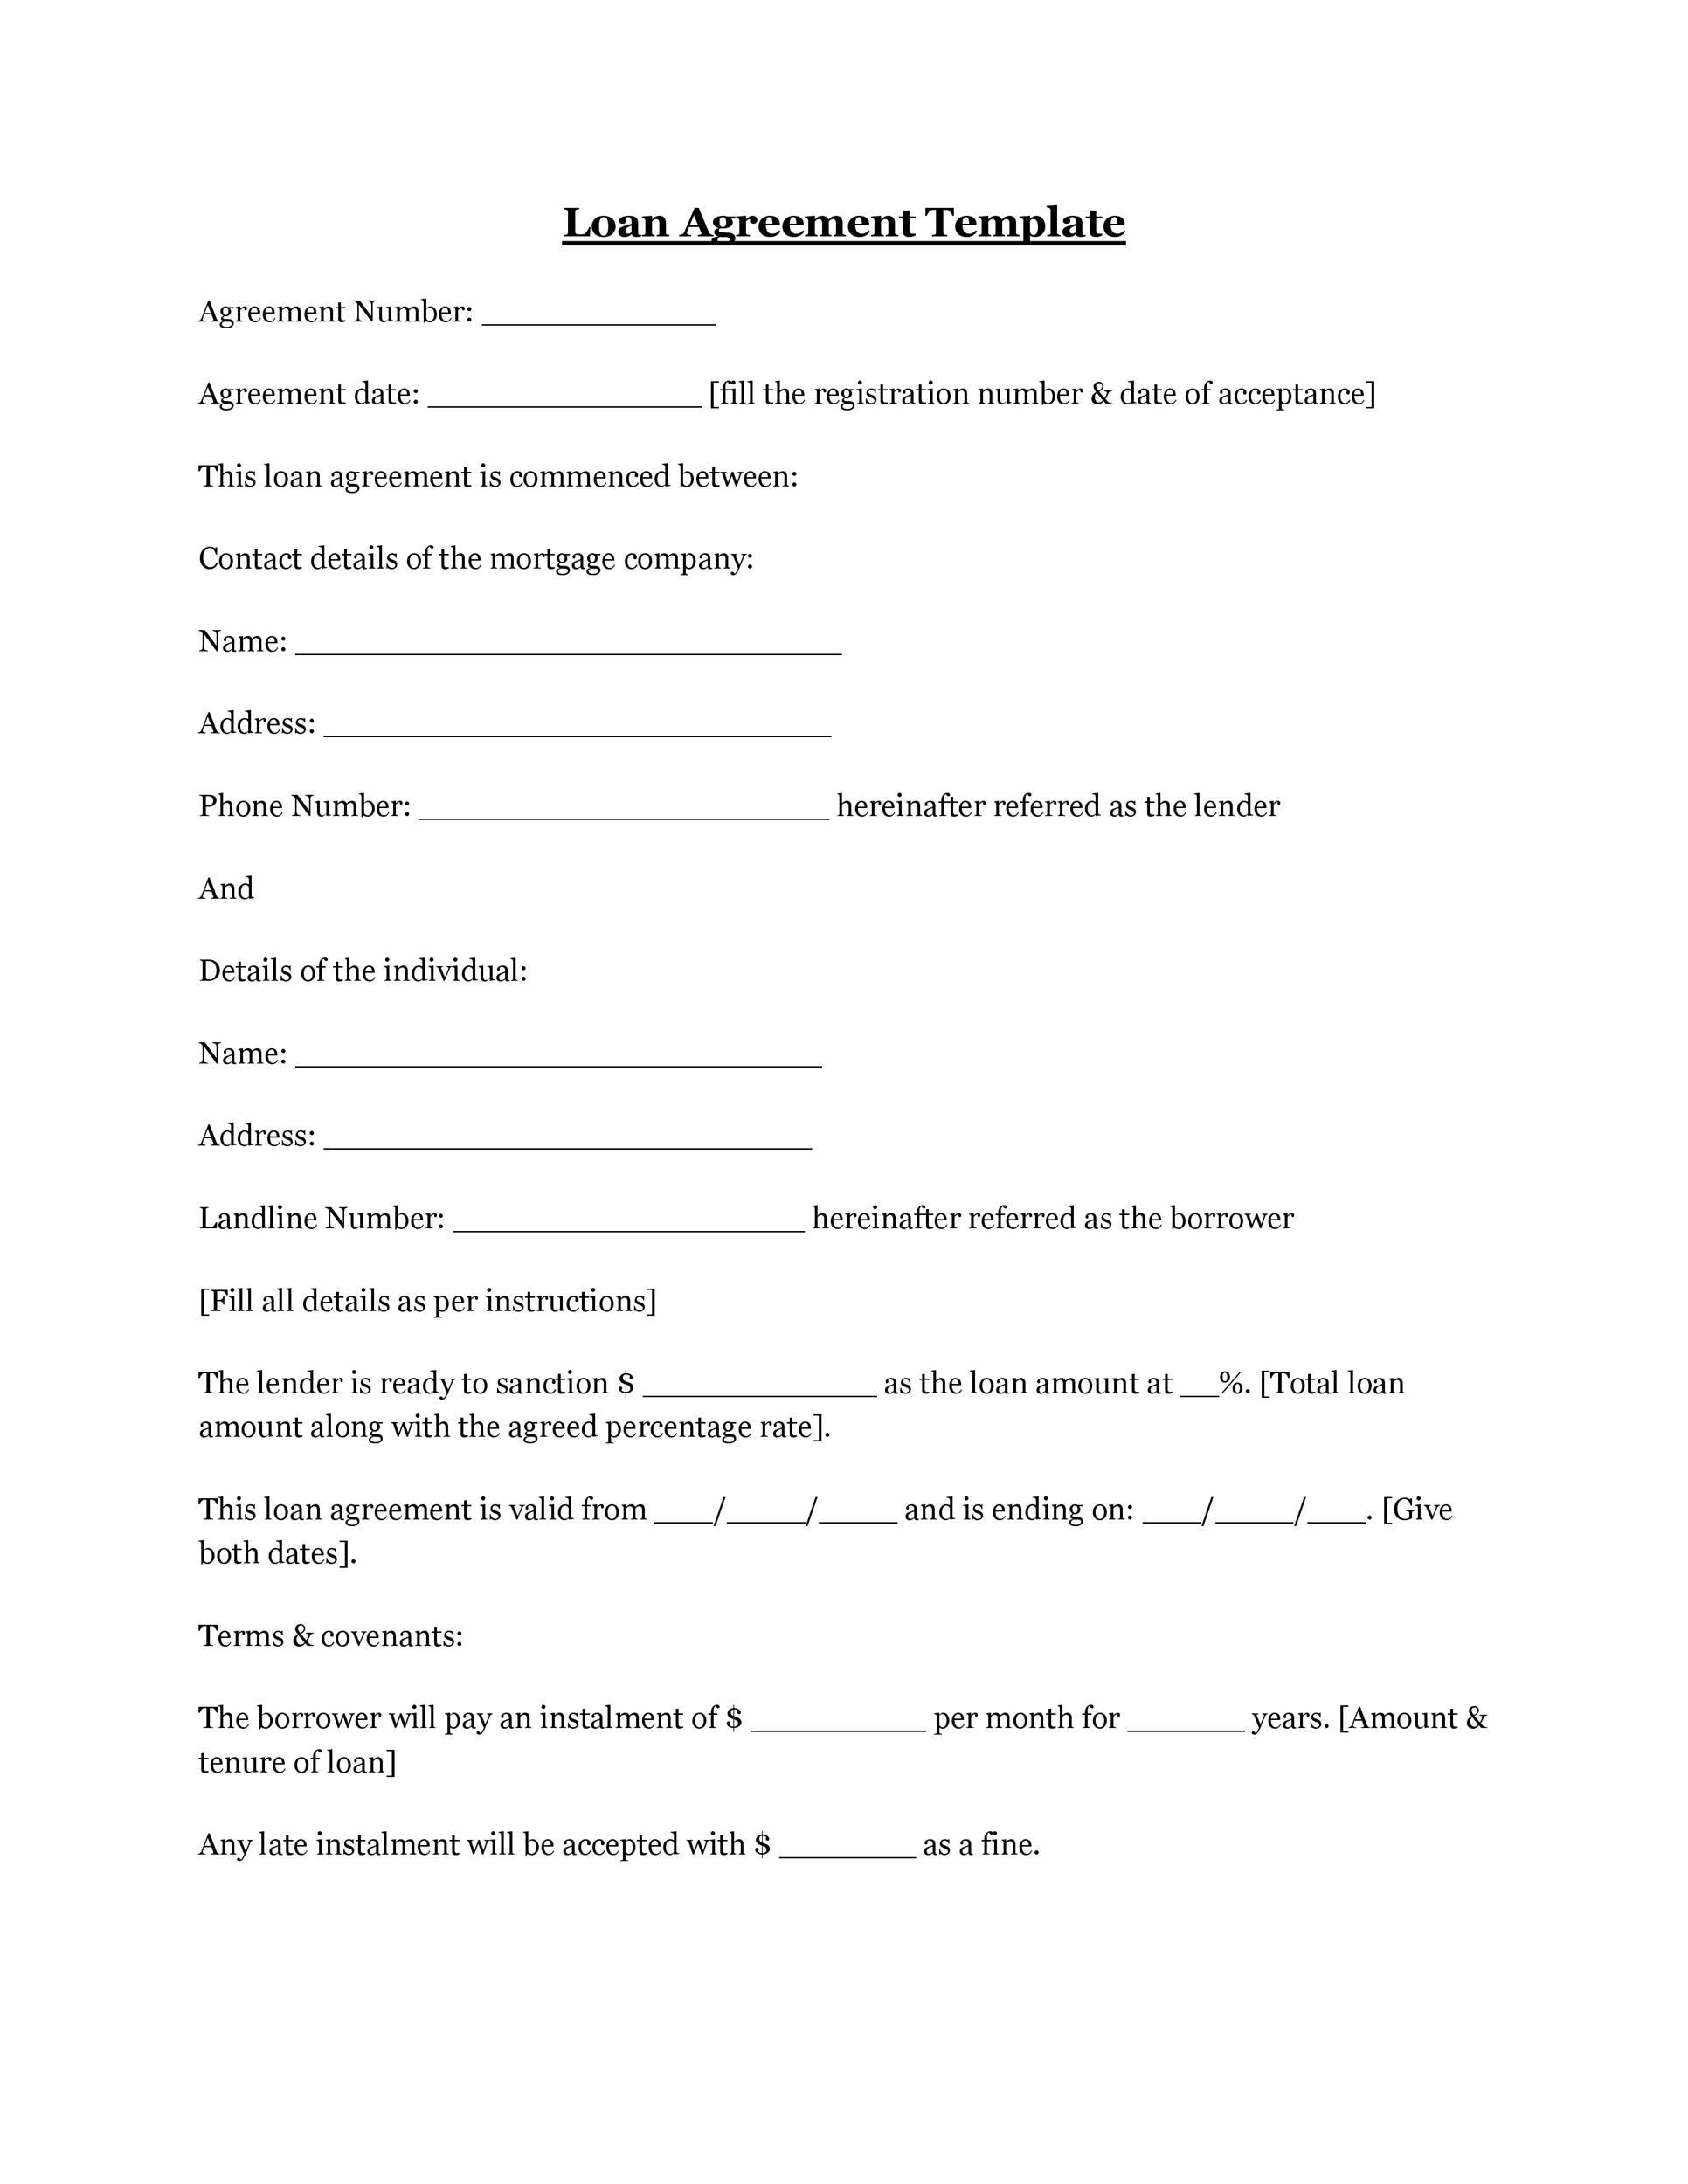 40 Free Loan Agreement Templates Word PDF Template Lab – Free Loan Agreement Template Word